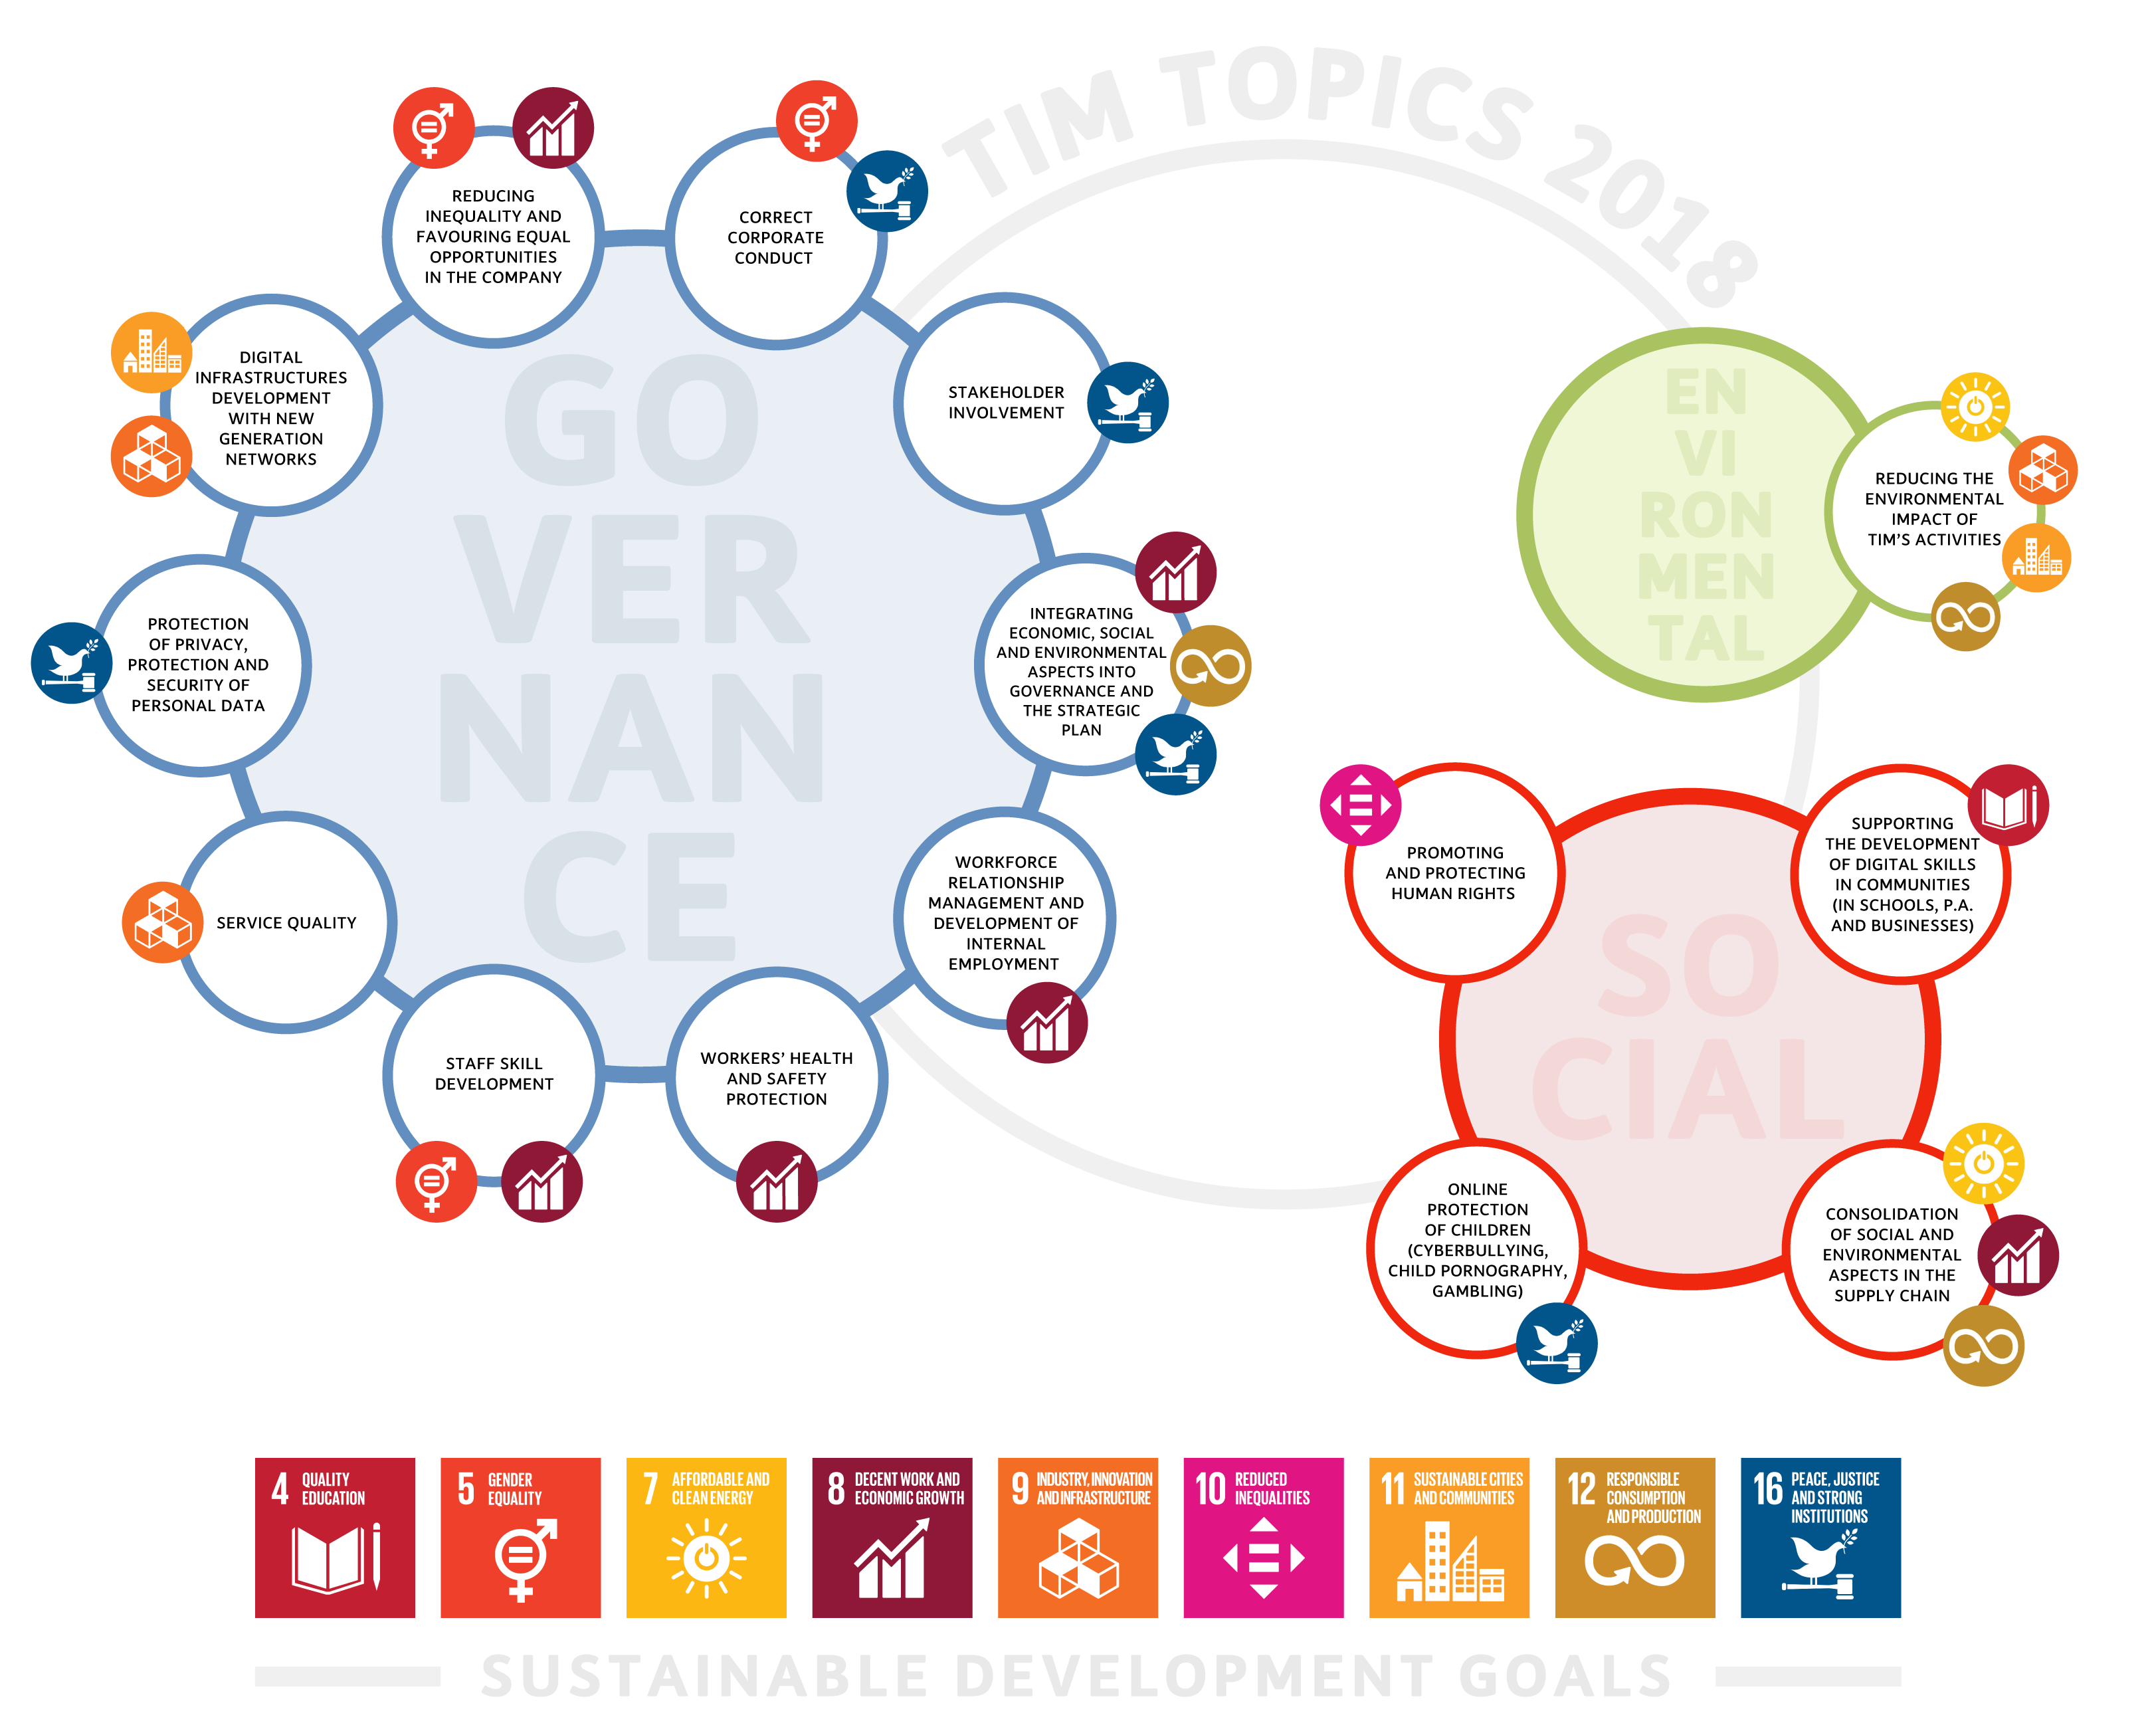 TIM-topics-sdgs-2018-eng